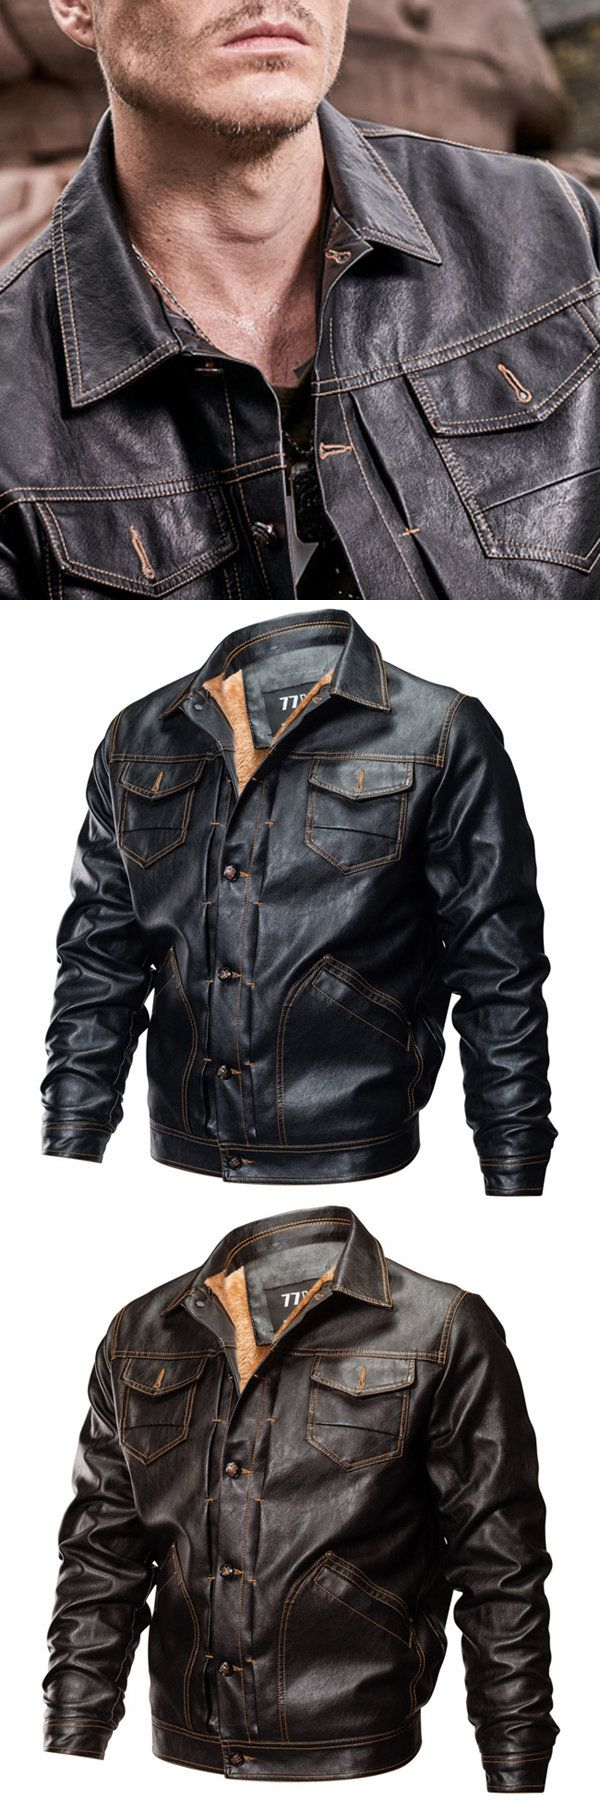 Stylish Leather Jackets for Men. New Year's Best Choise. 2 Colors Optional. Special Discount Today.